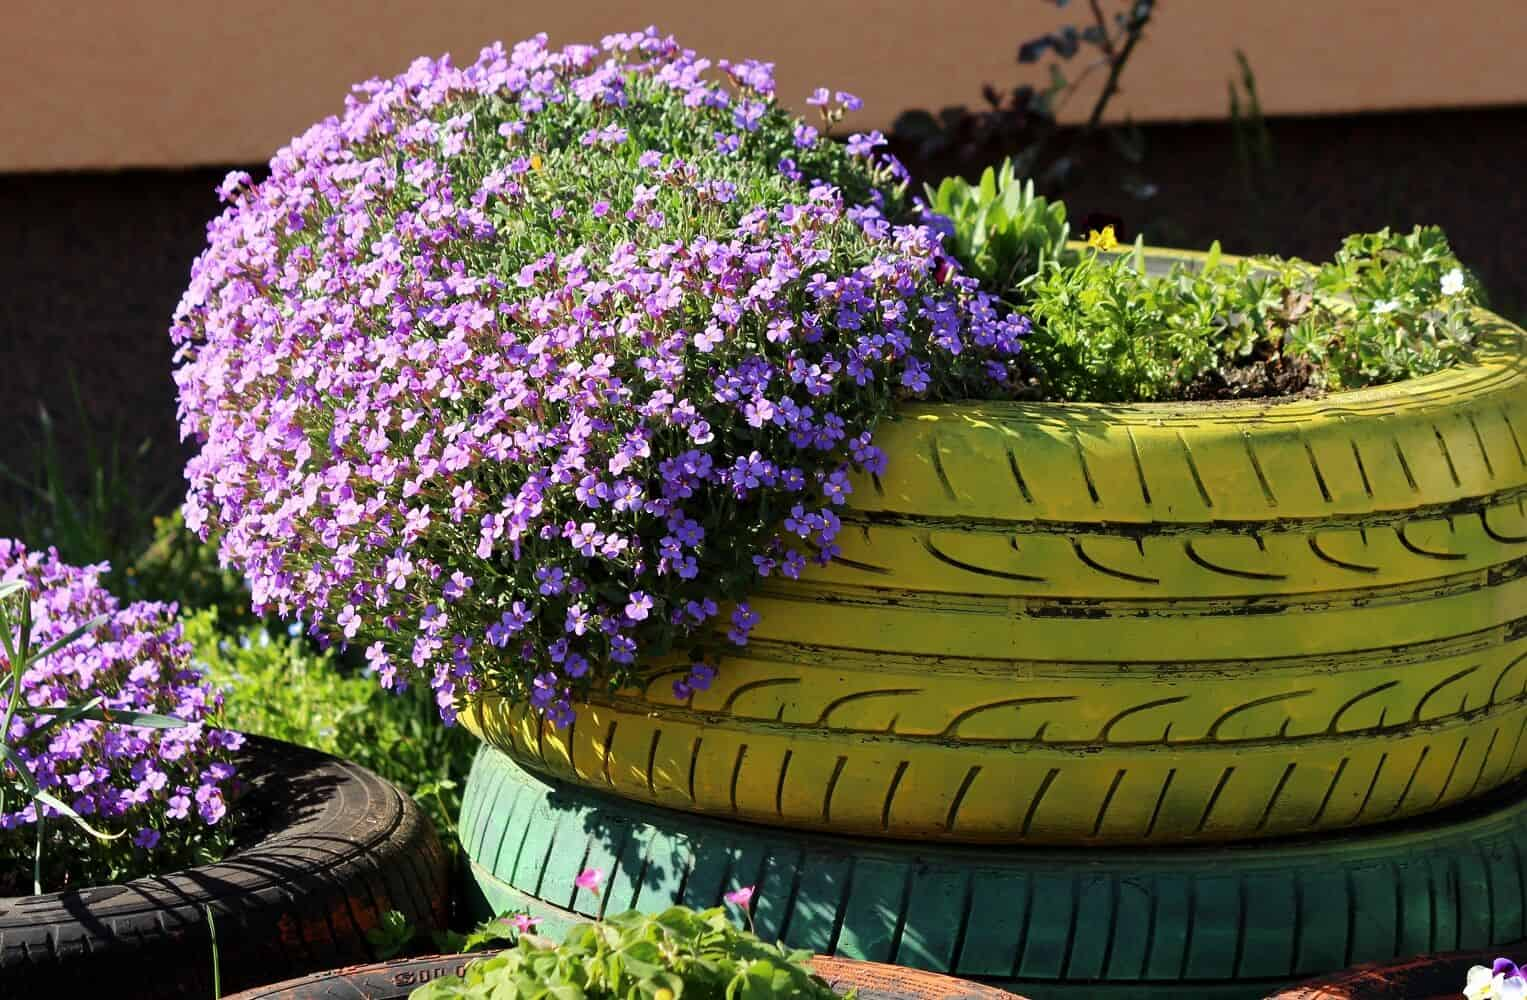 Best ground cover plants - Creeping phlox on stylish old tire